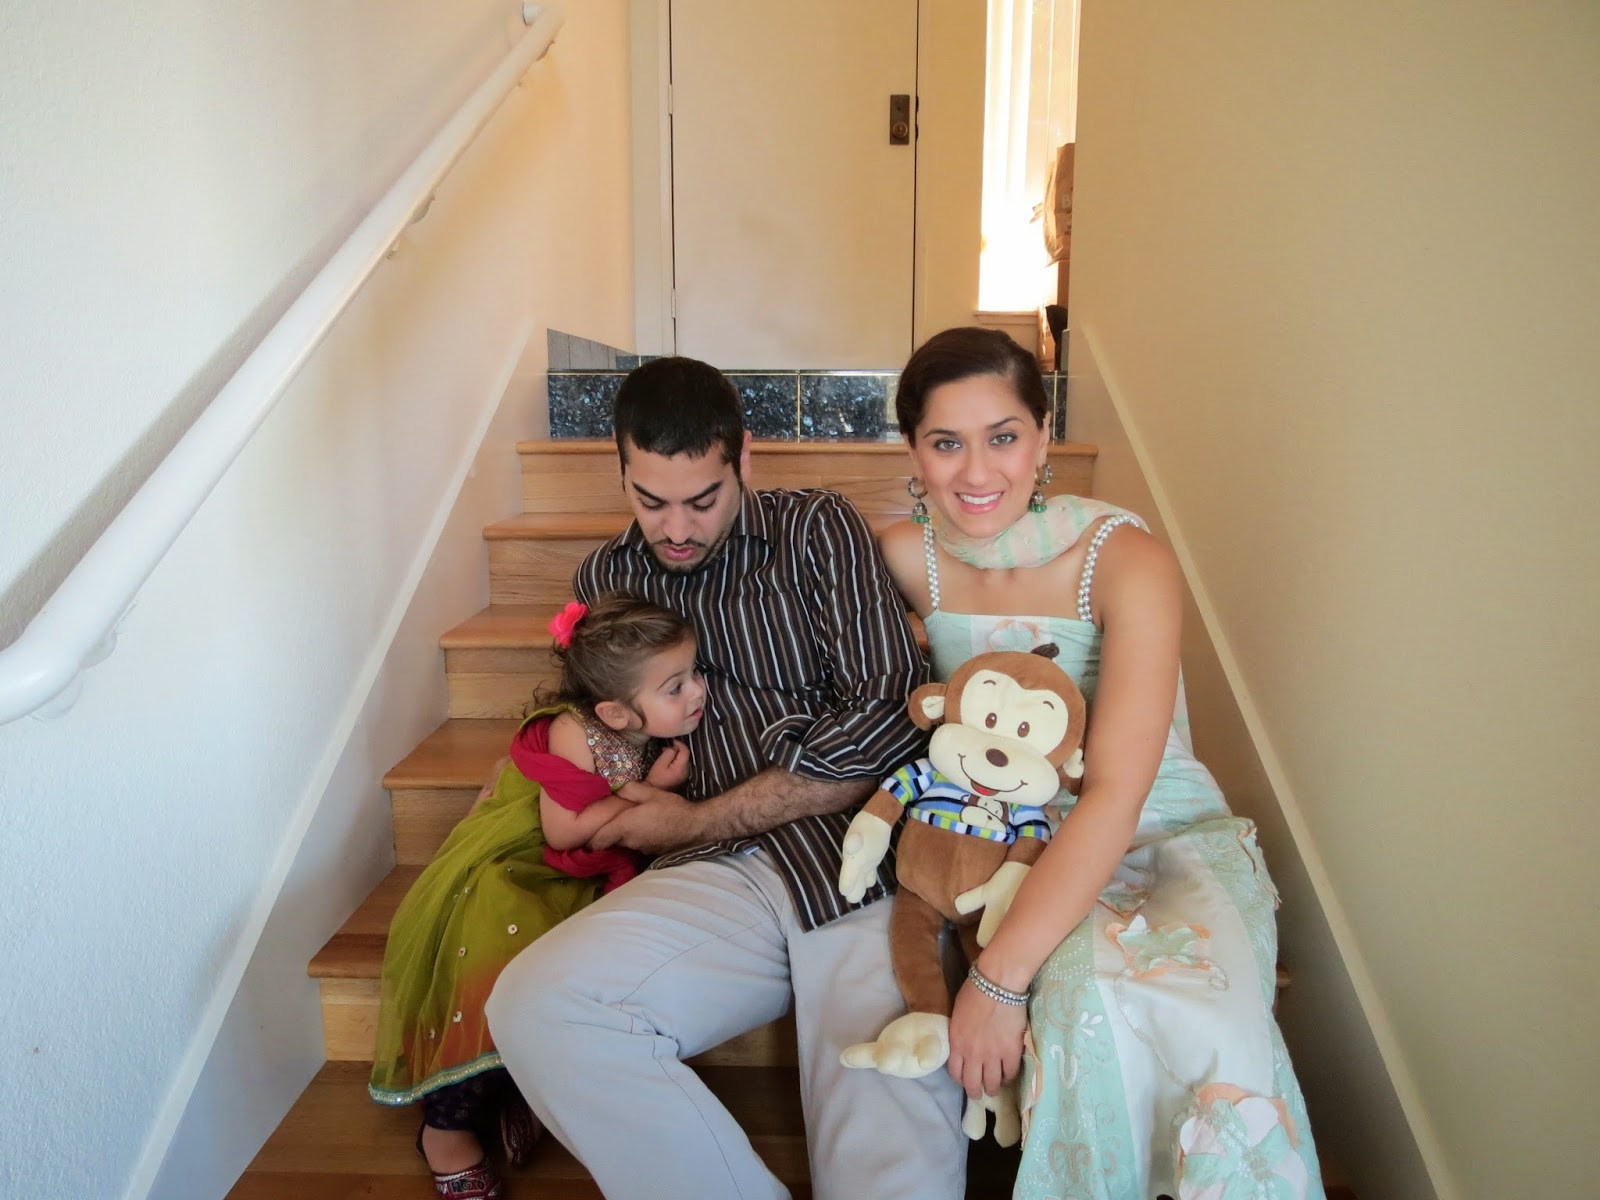 Sahar with her family, Mo, the monkey, her husband Tabriz, and Nava on Eid at their home in California. October 2014.